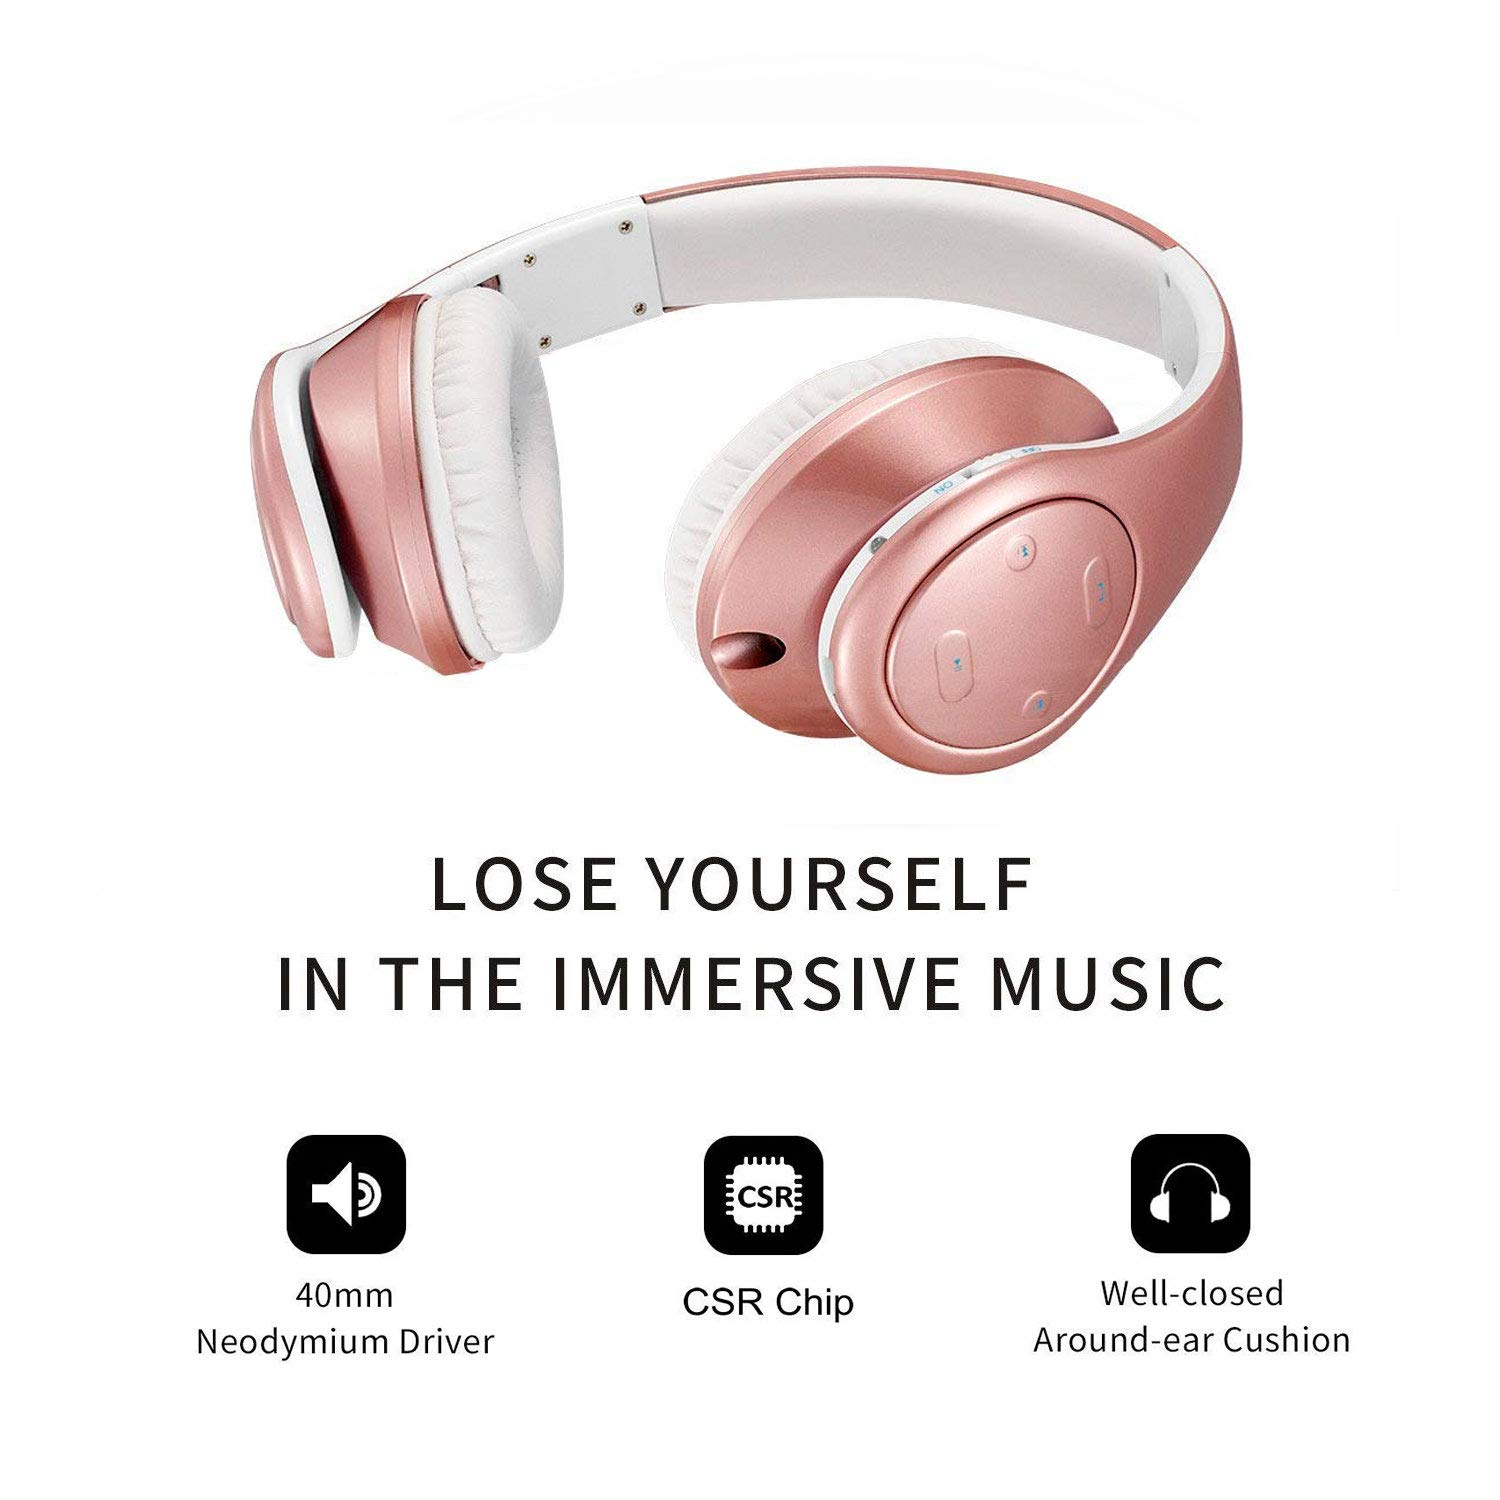 Cascos Bluetooth Inalámbricos, Auriculares Bluetooth Diadema con Micrófono Manos Libres, Plegable Hi-Fi Estéreo con 3.5mm Audio Jack para TV, PC, Tablet, ...